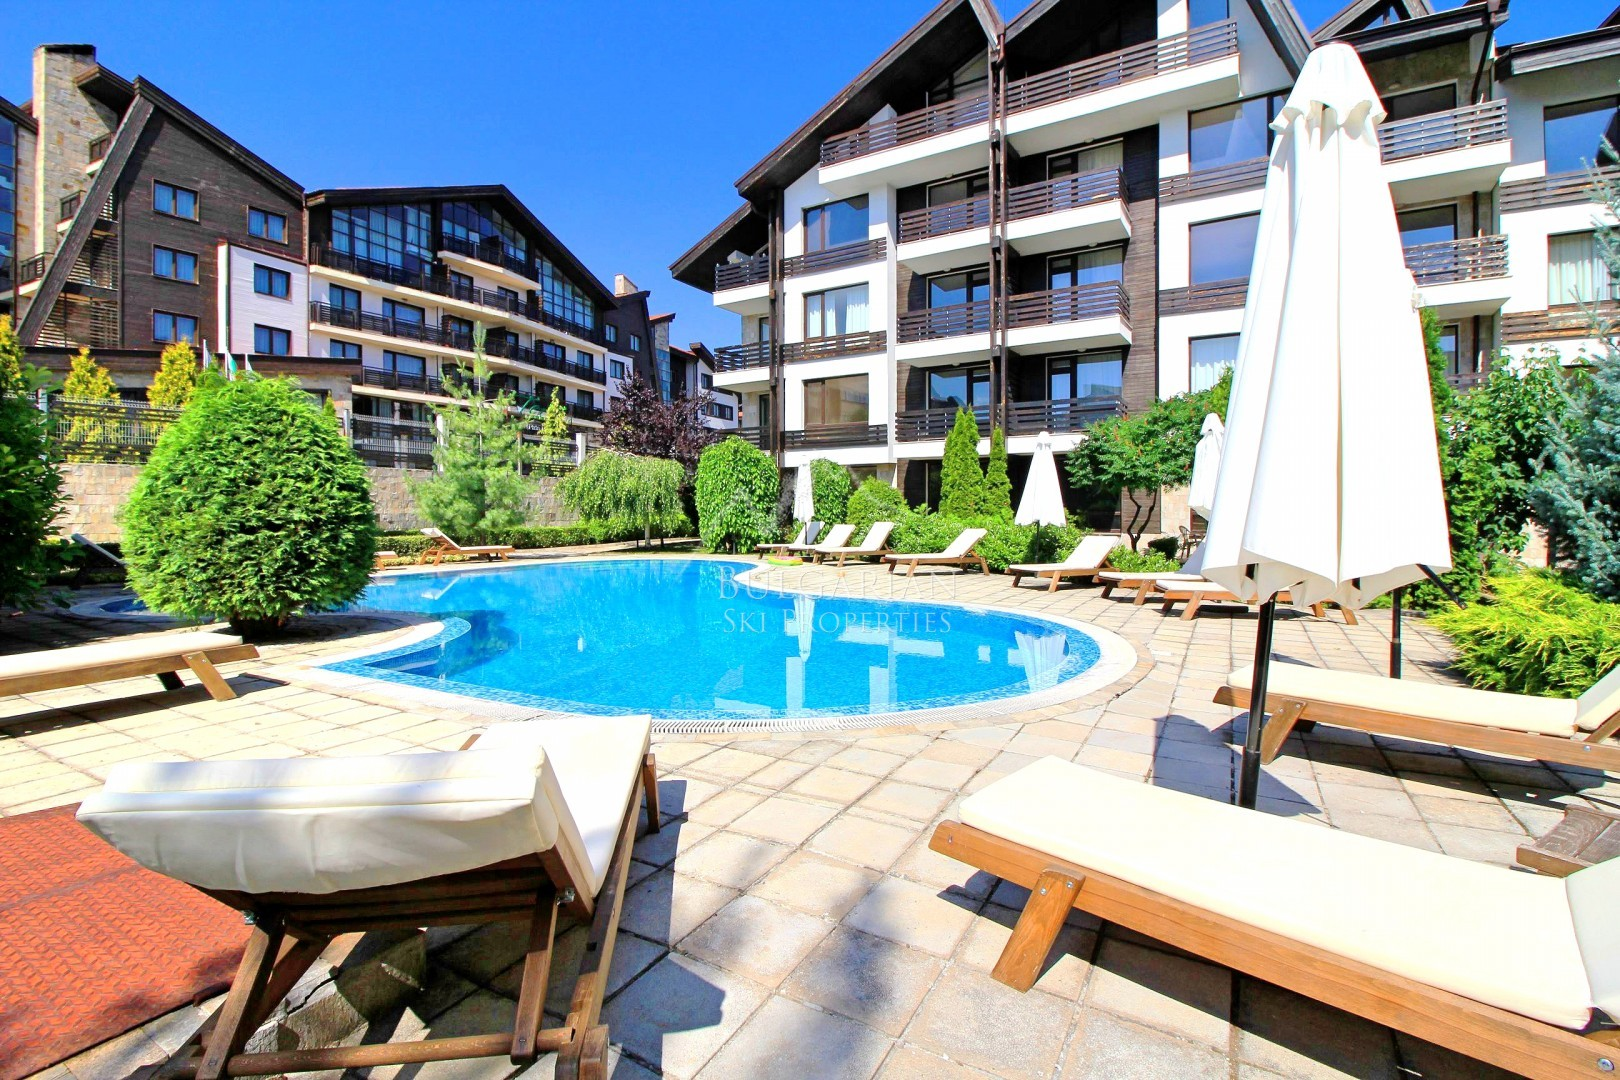 Aspen Suites, Bansko: furnished studio for sale with pool view